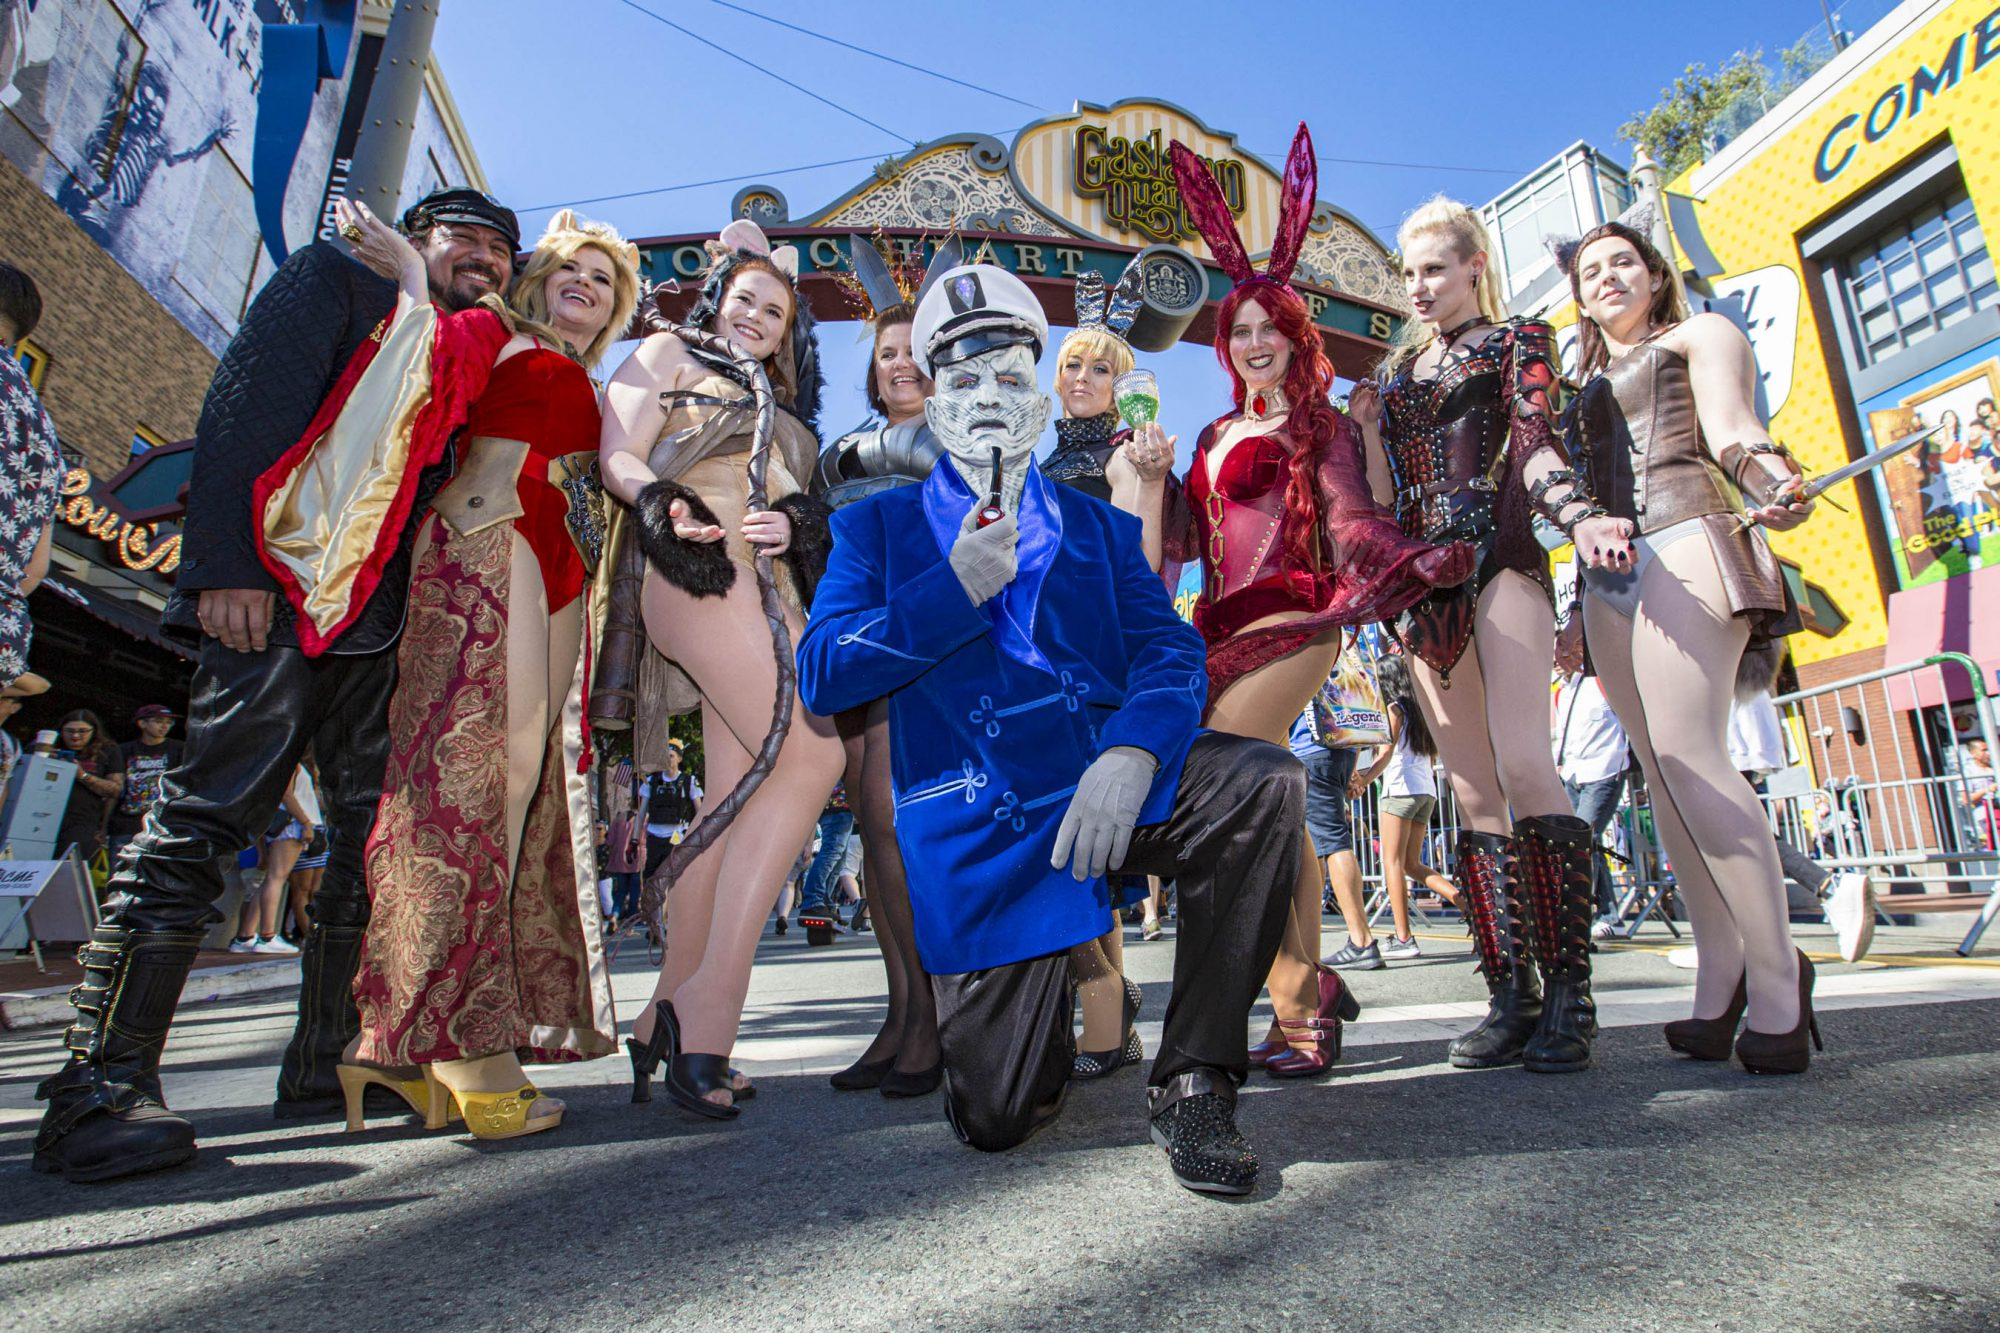 SAN DIEGO, CALIFORNIA - JULY 19: Cosplayers from the San Diego Comic-Con Game Of Thrones Bunny Hutch pose for photos under the iconic Gaslamp District sign outside 2019 Comic-Con International on July 19, 2019 in San Diego, California. (Photo by Daniel Knighton/Getty Images)